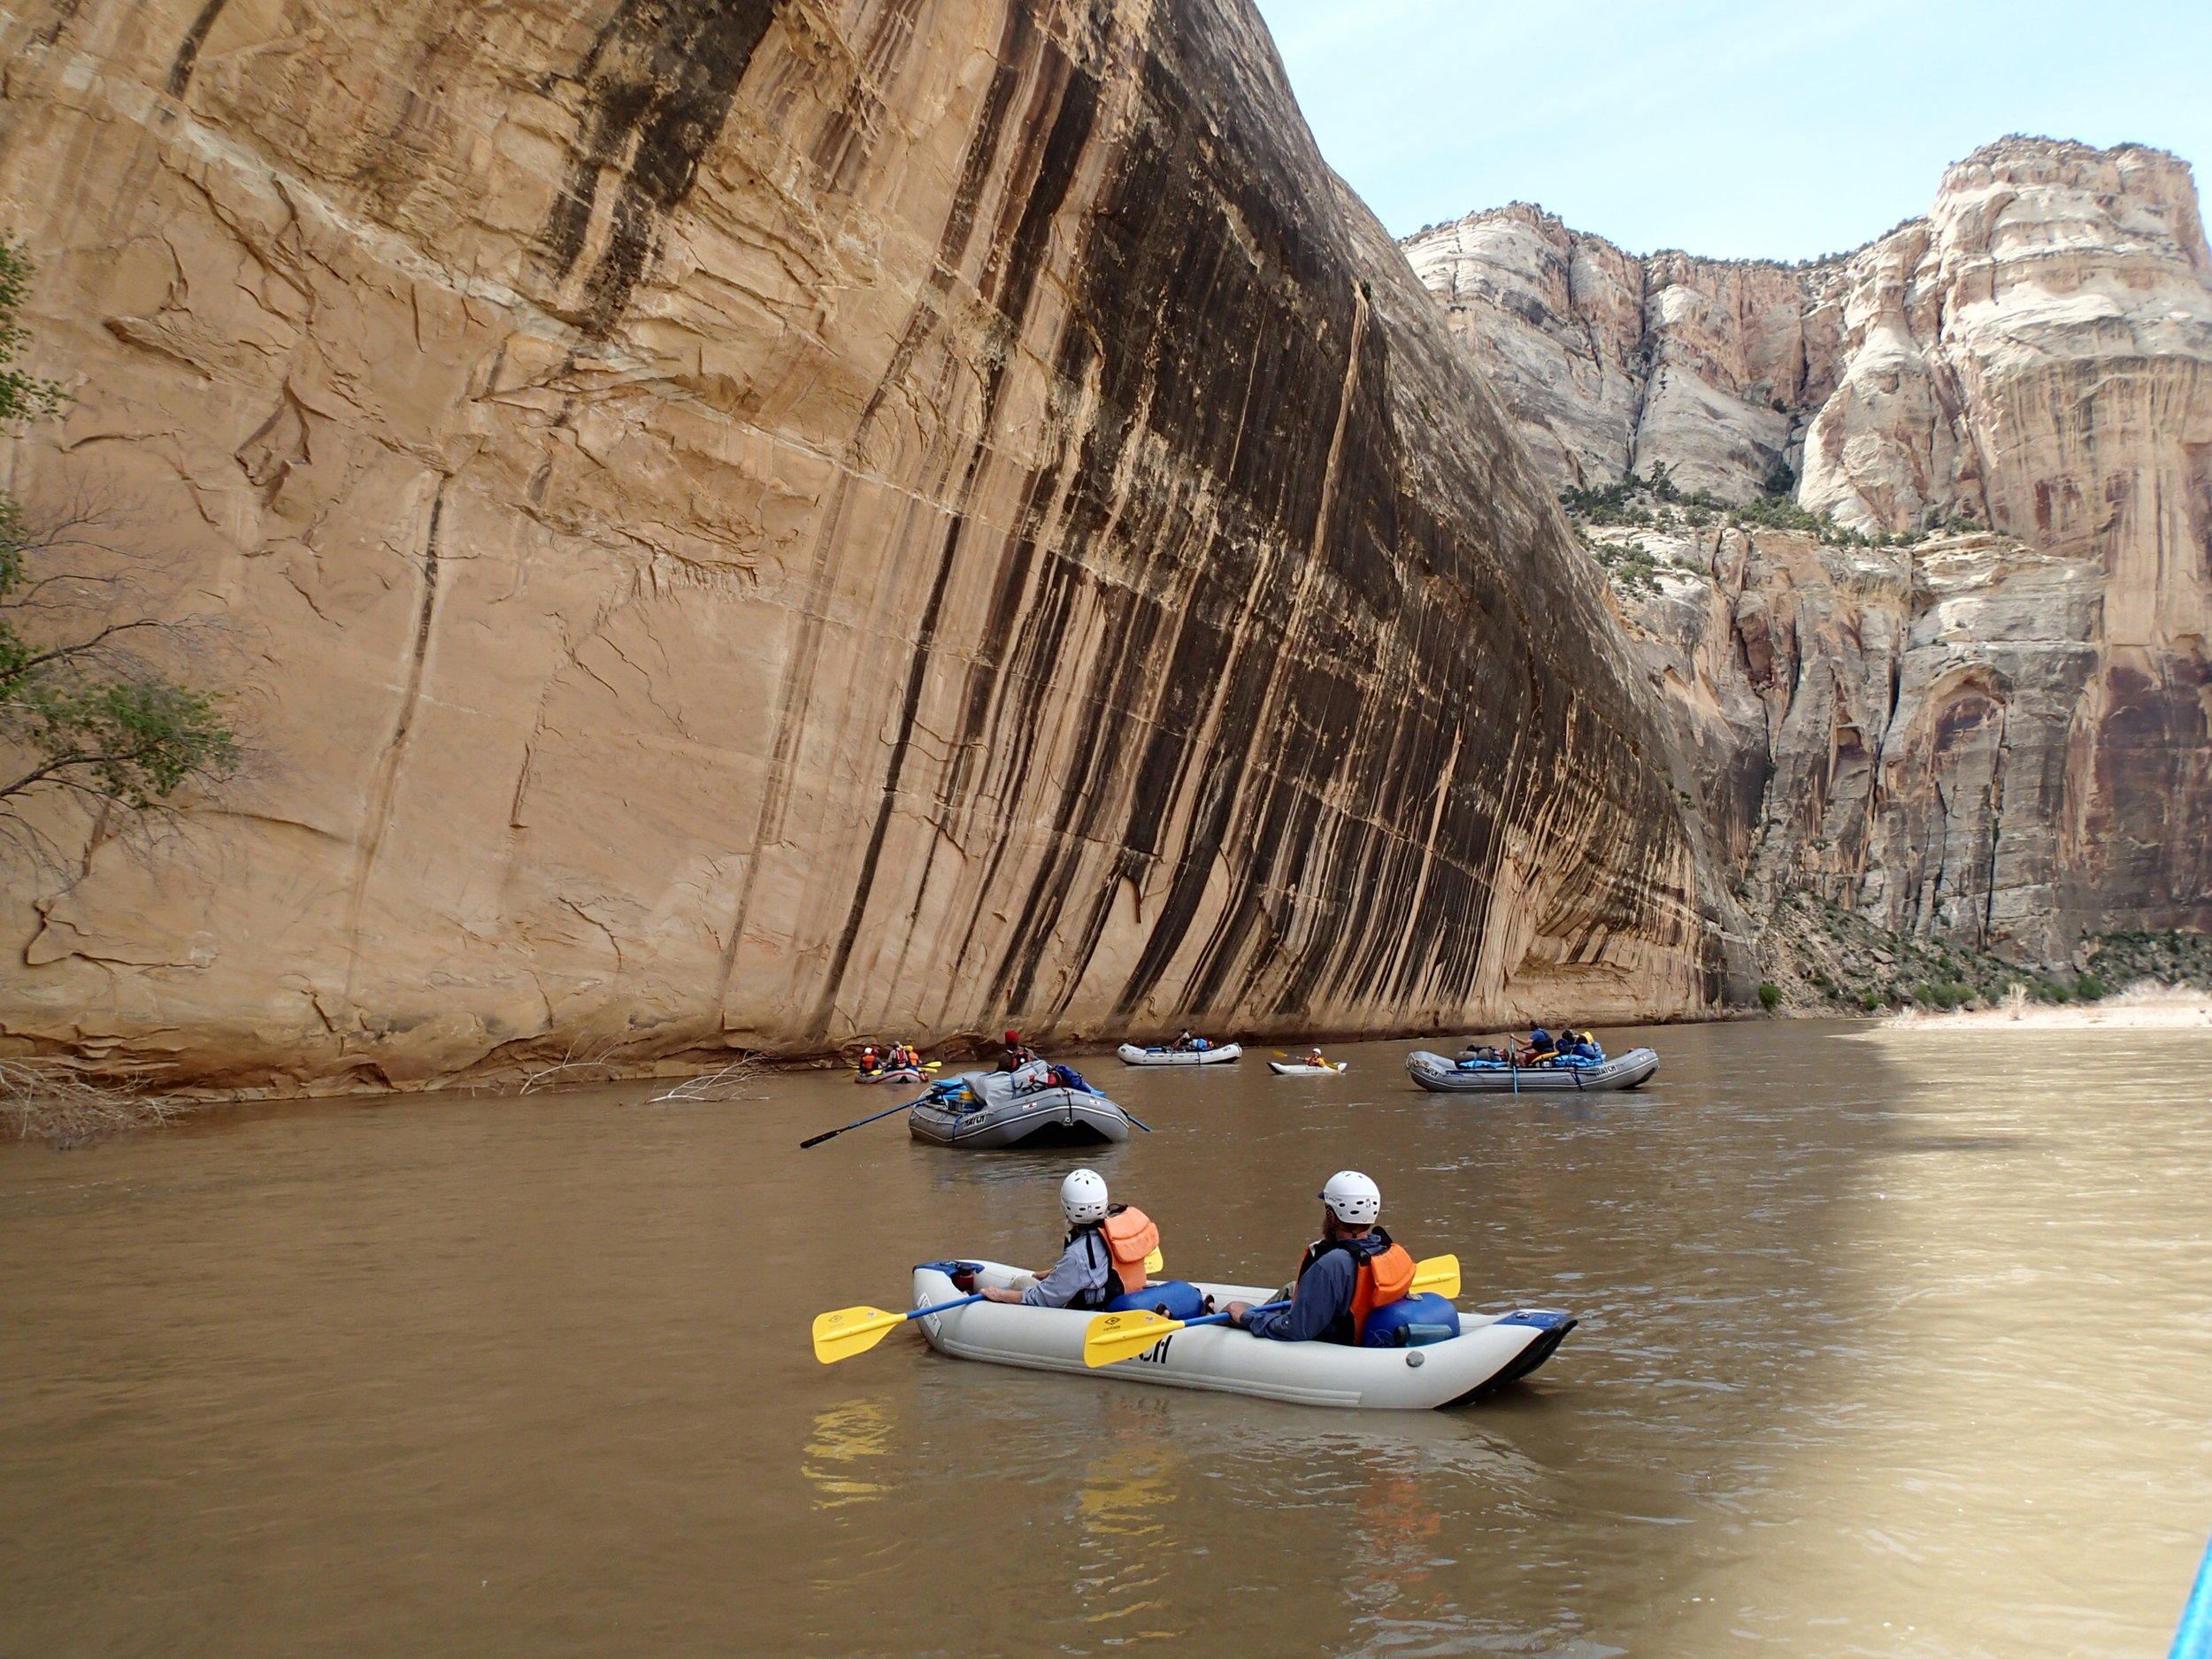 Rafting the Yampa river - 4-5 days